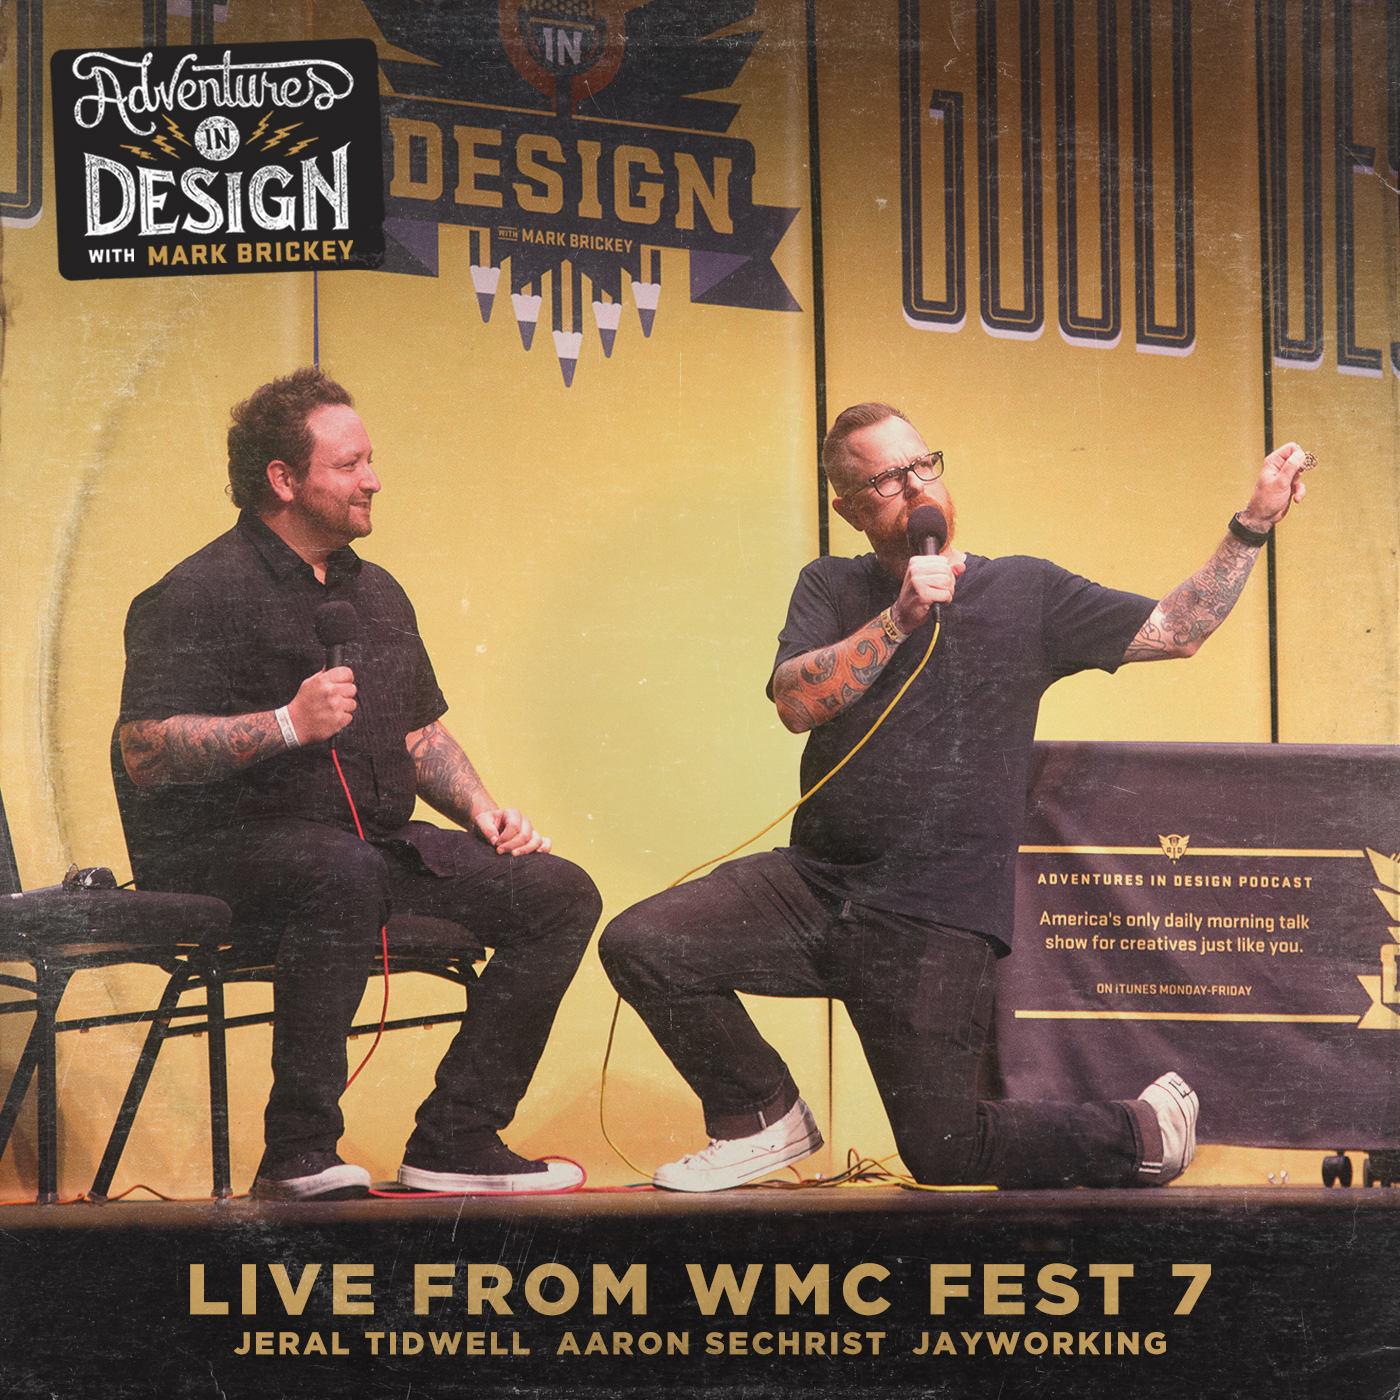 434 - Live from WMC Fest 7 with Jeral Tidwell, Aaron Sechrist, and Jayworking